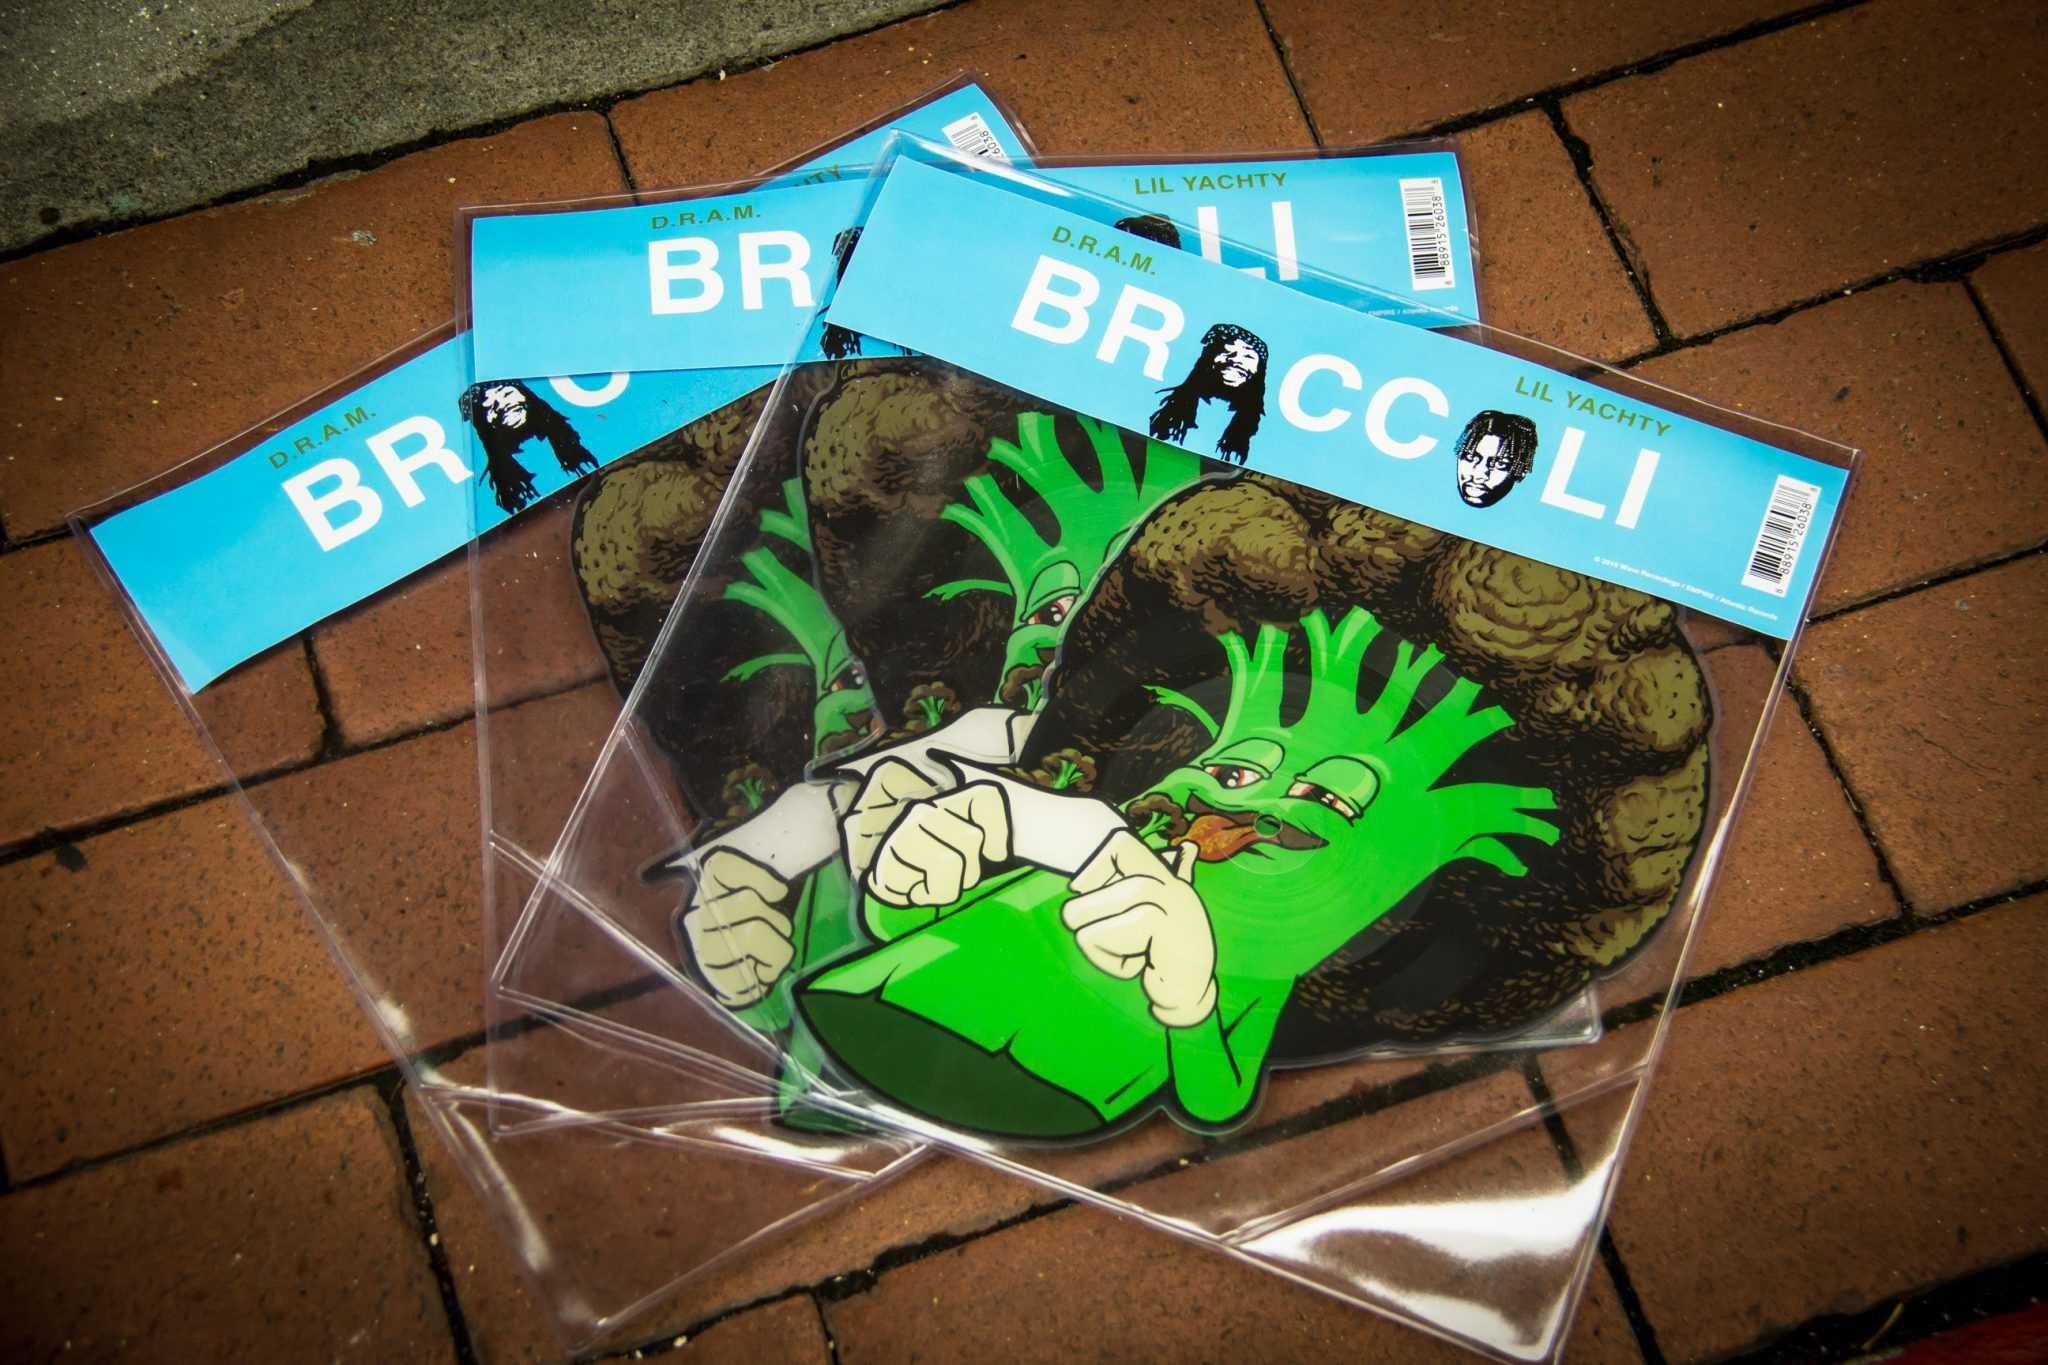 """D.R.A.M. releases """"Broccoli"""" single on vinyl for Record Store Day"""